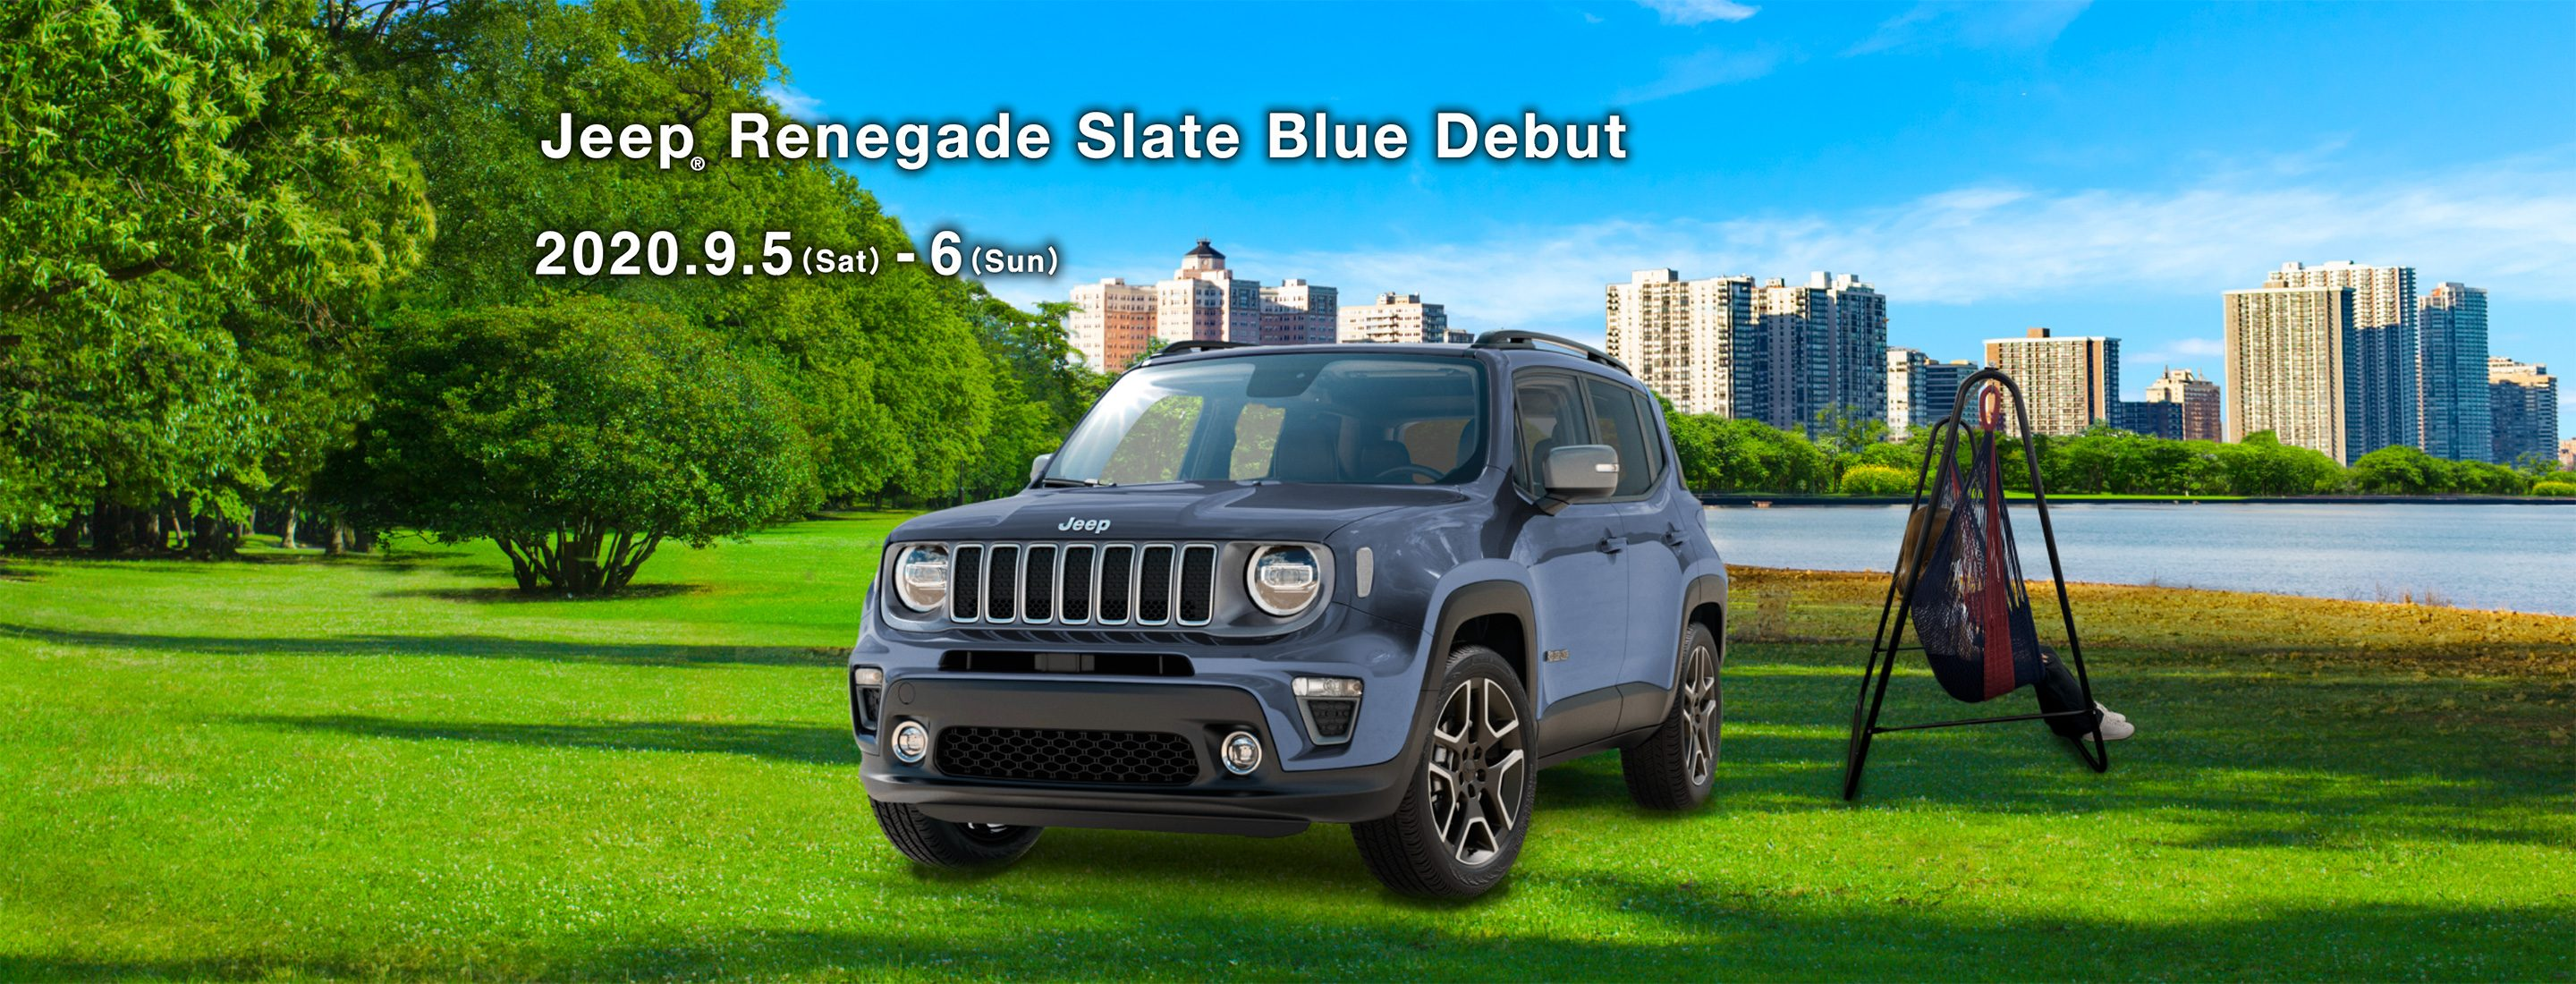 ジープ広島西 Jeep Renegade Slate Blue Debut 2020.9.5(sat)-9.6(sun)